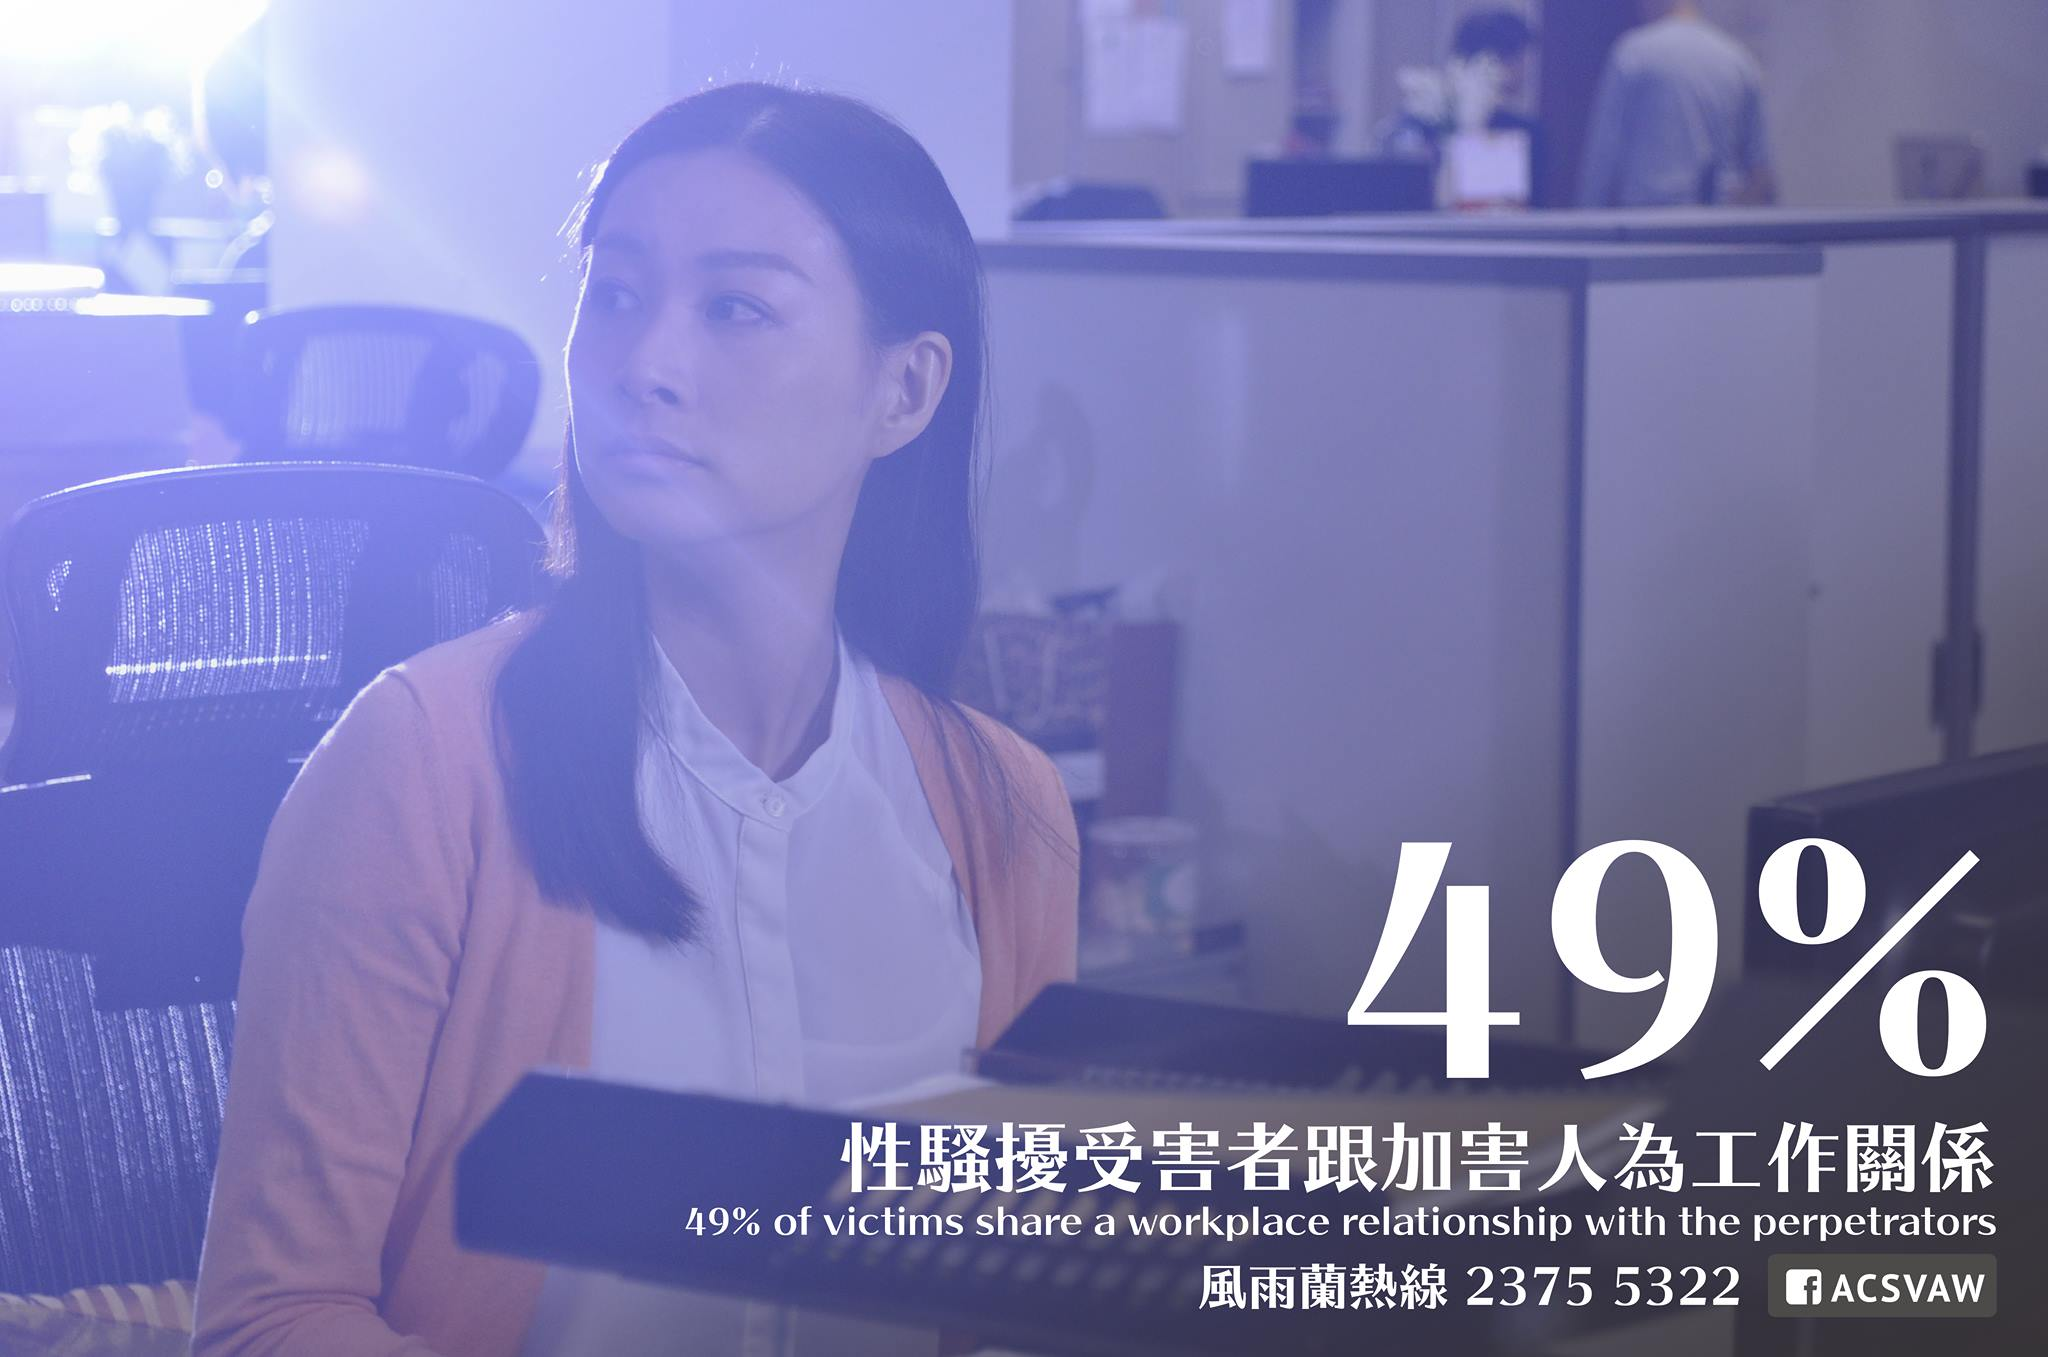 """""""Sexually harassed at work by her supervisor for many years.""""-The third story in RainLily's 'Best Actress' advert.  Sexual harassment cases had reached new high in 2015-2017, which was 1.6 times of 2012-2014. 49% of victims share a workplace relationship with the perpetrators, 41% of cases happened at workplace."""